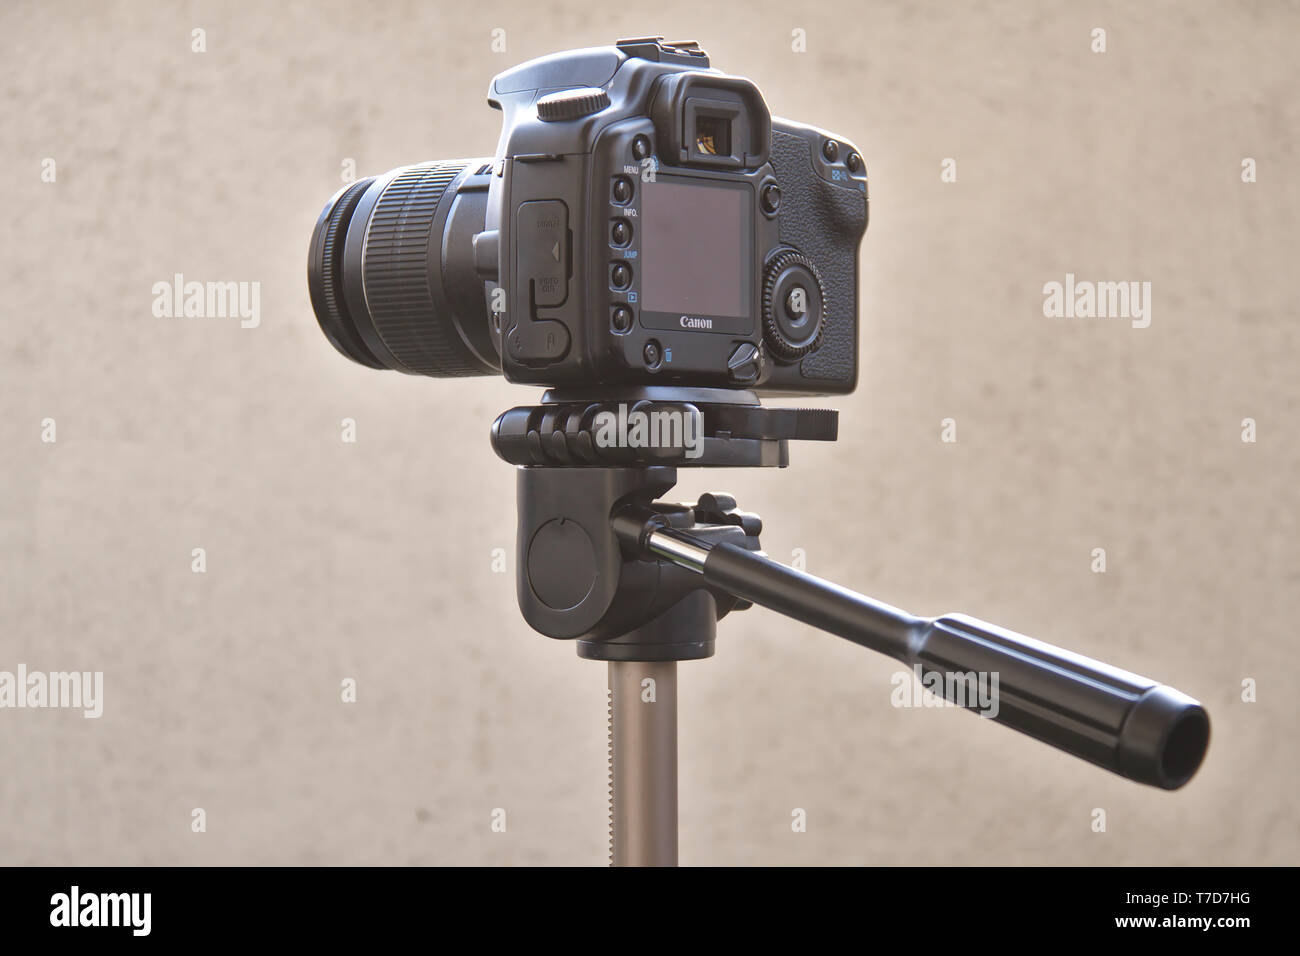 Canon digital camera with lens, attached to the tripod. Photo taken 05/2018 in Espoo, Finland - Stock Image